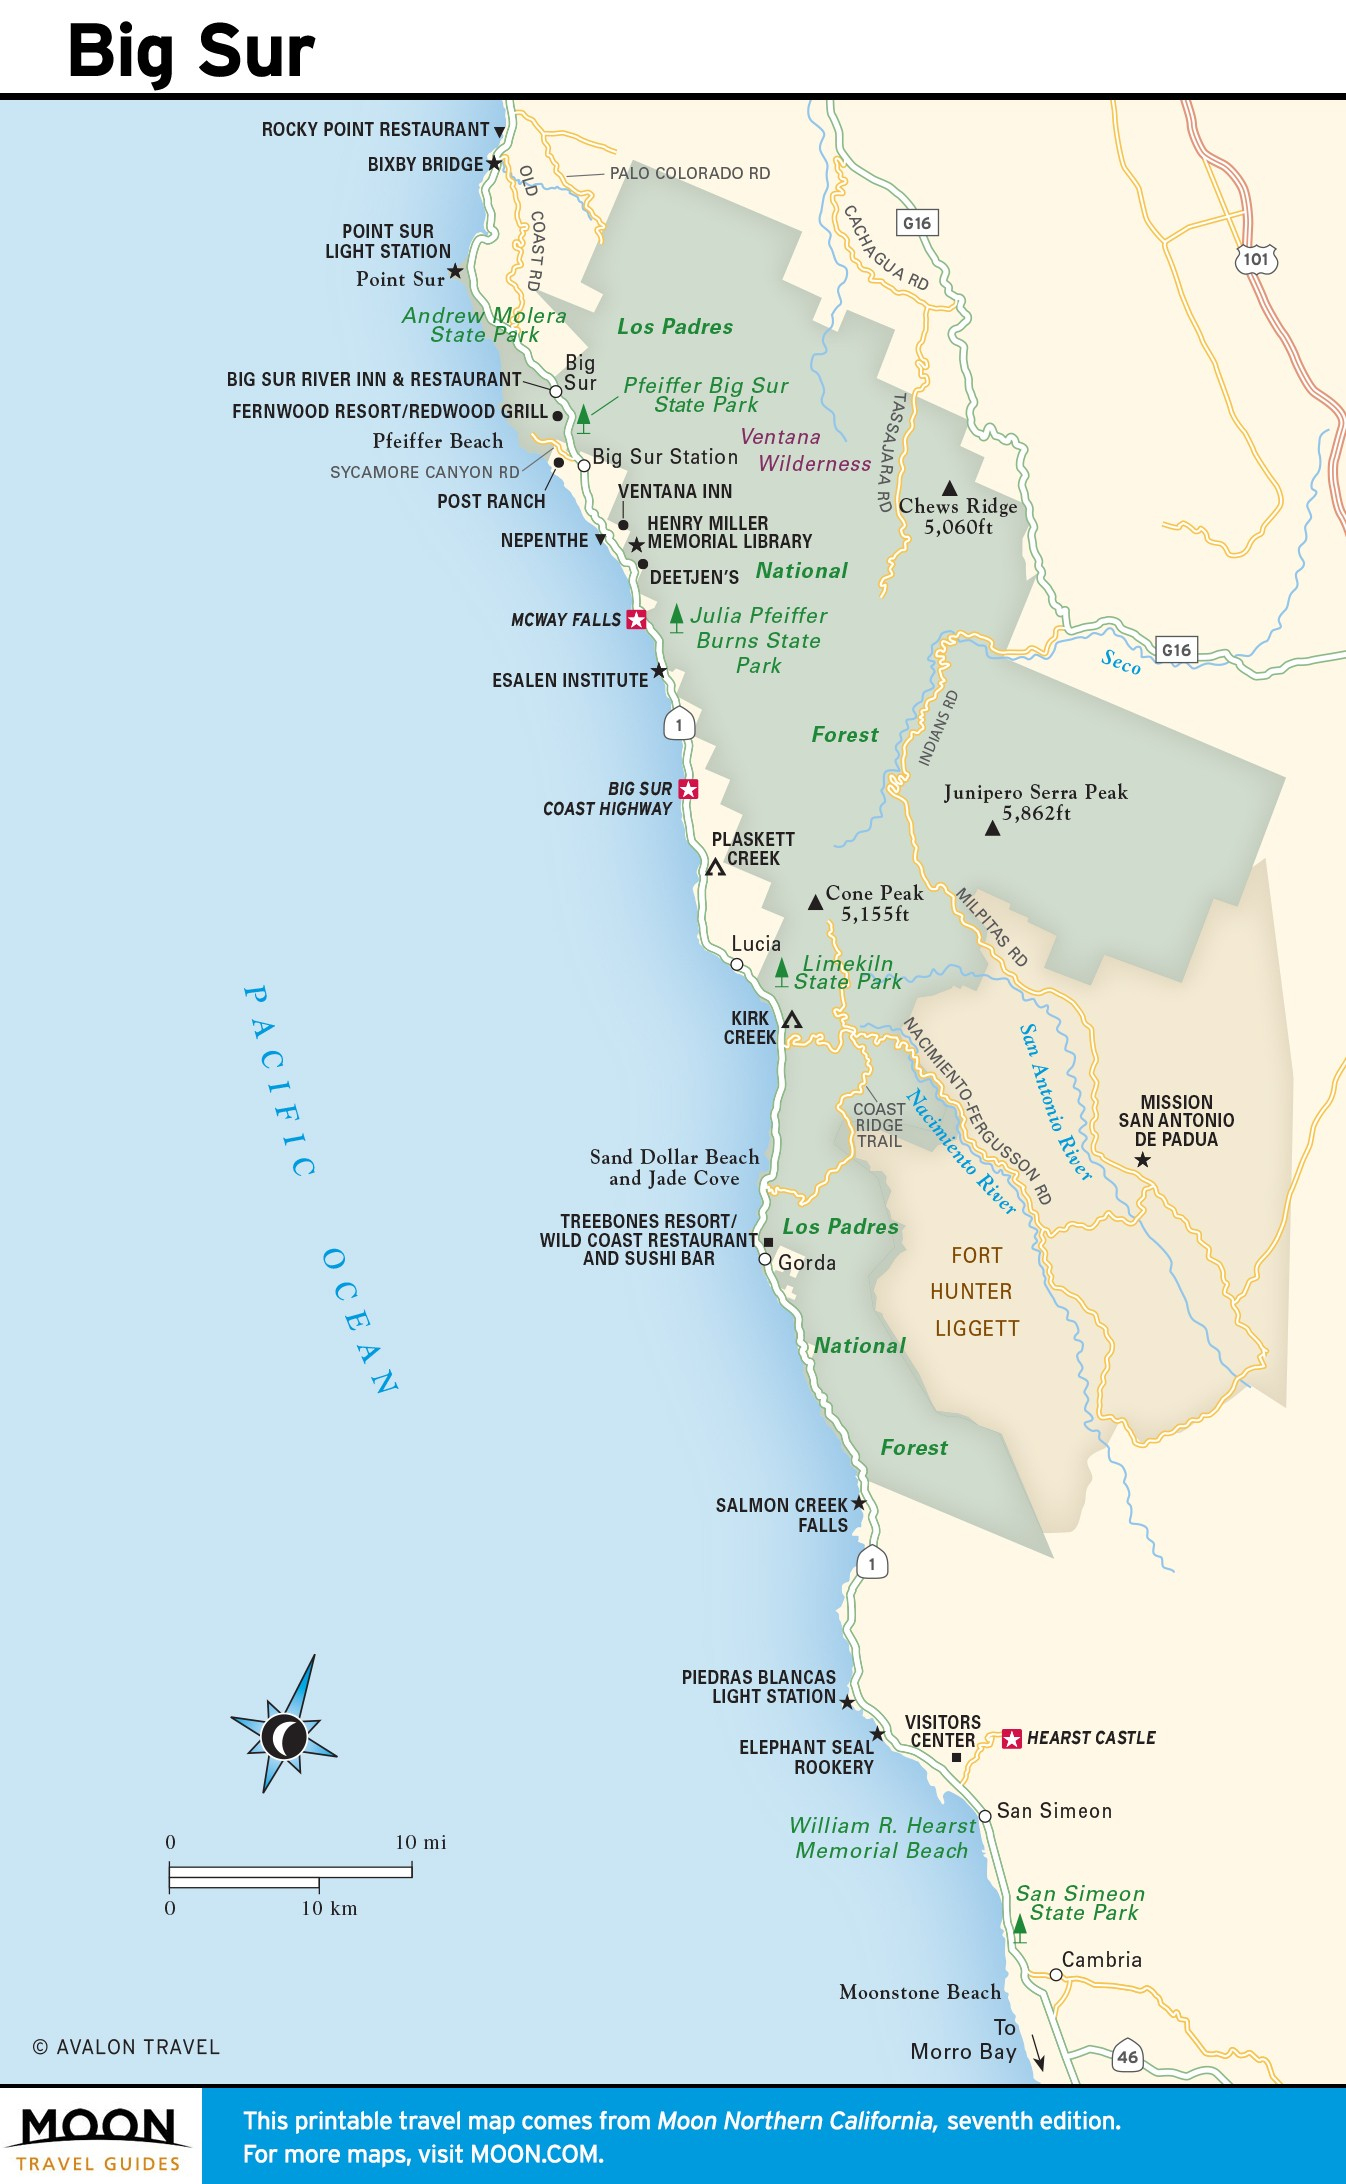 Us West Coast Counties Map Florida Road Map New Pacific Coast Route - California To Florida Road Trip Map